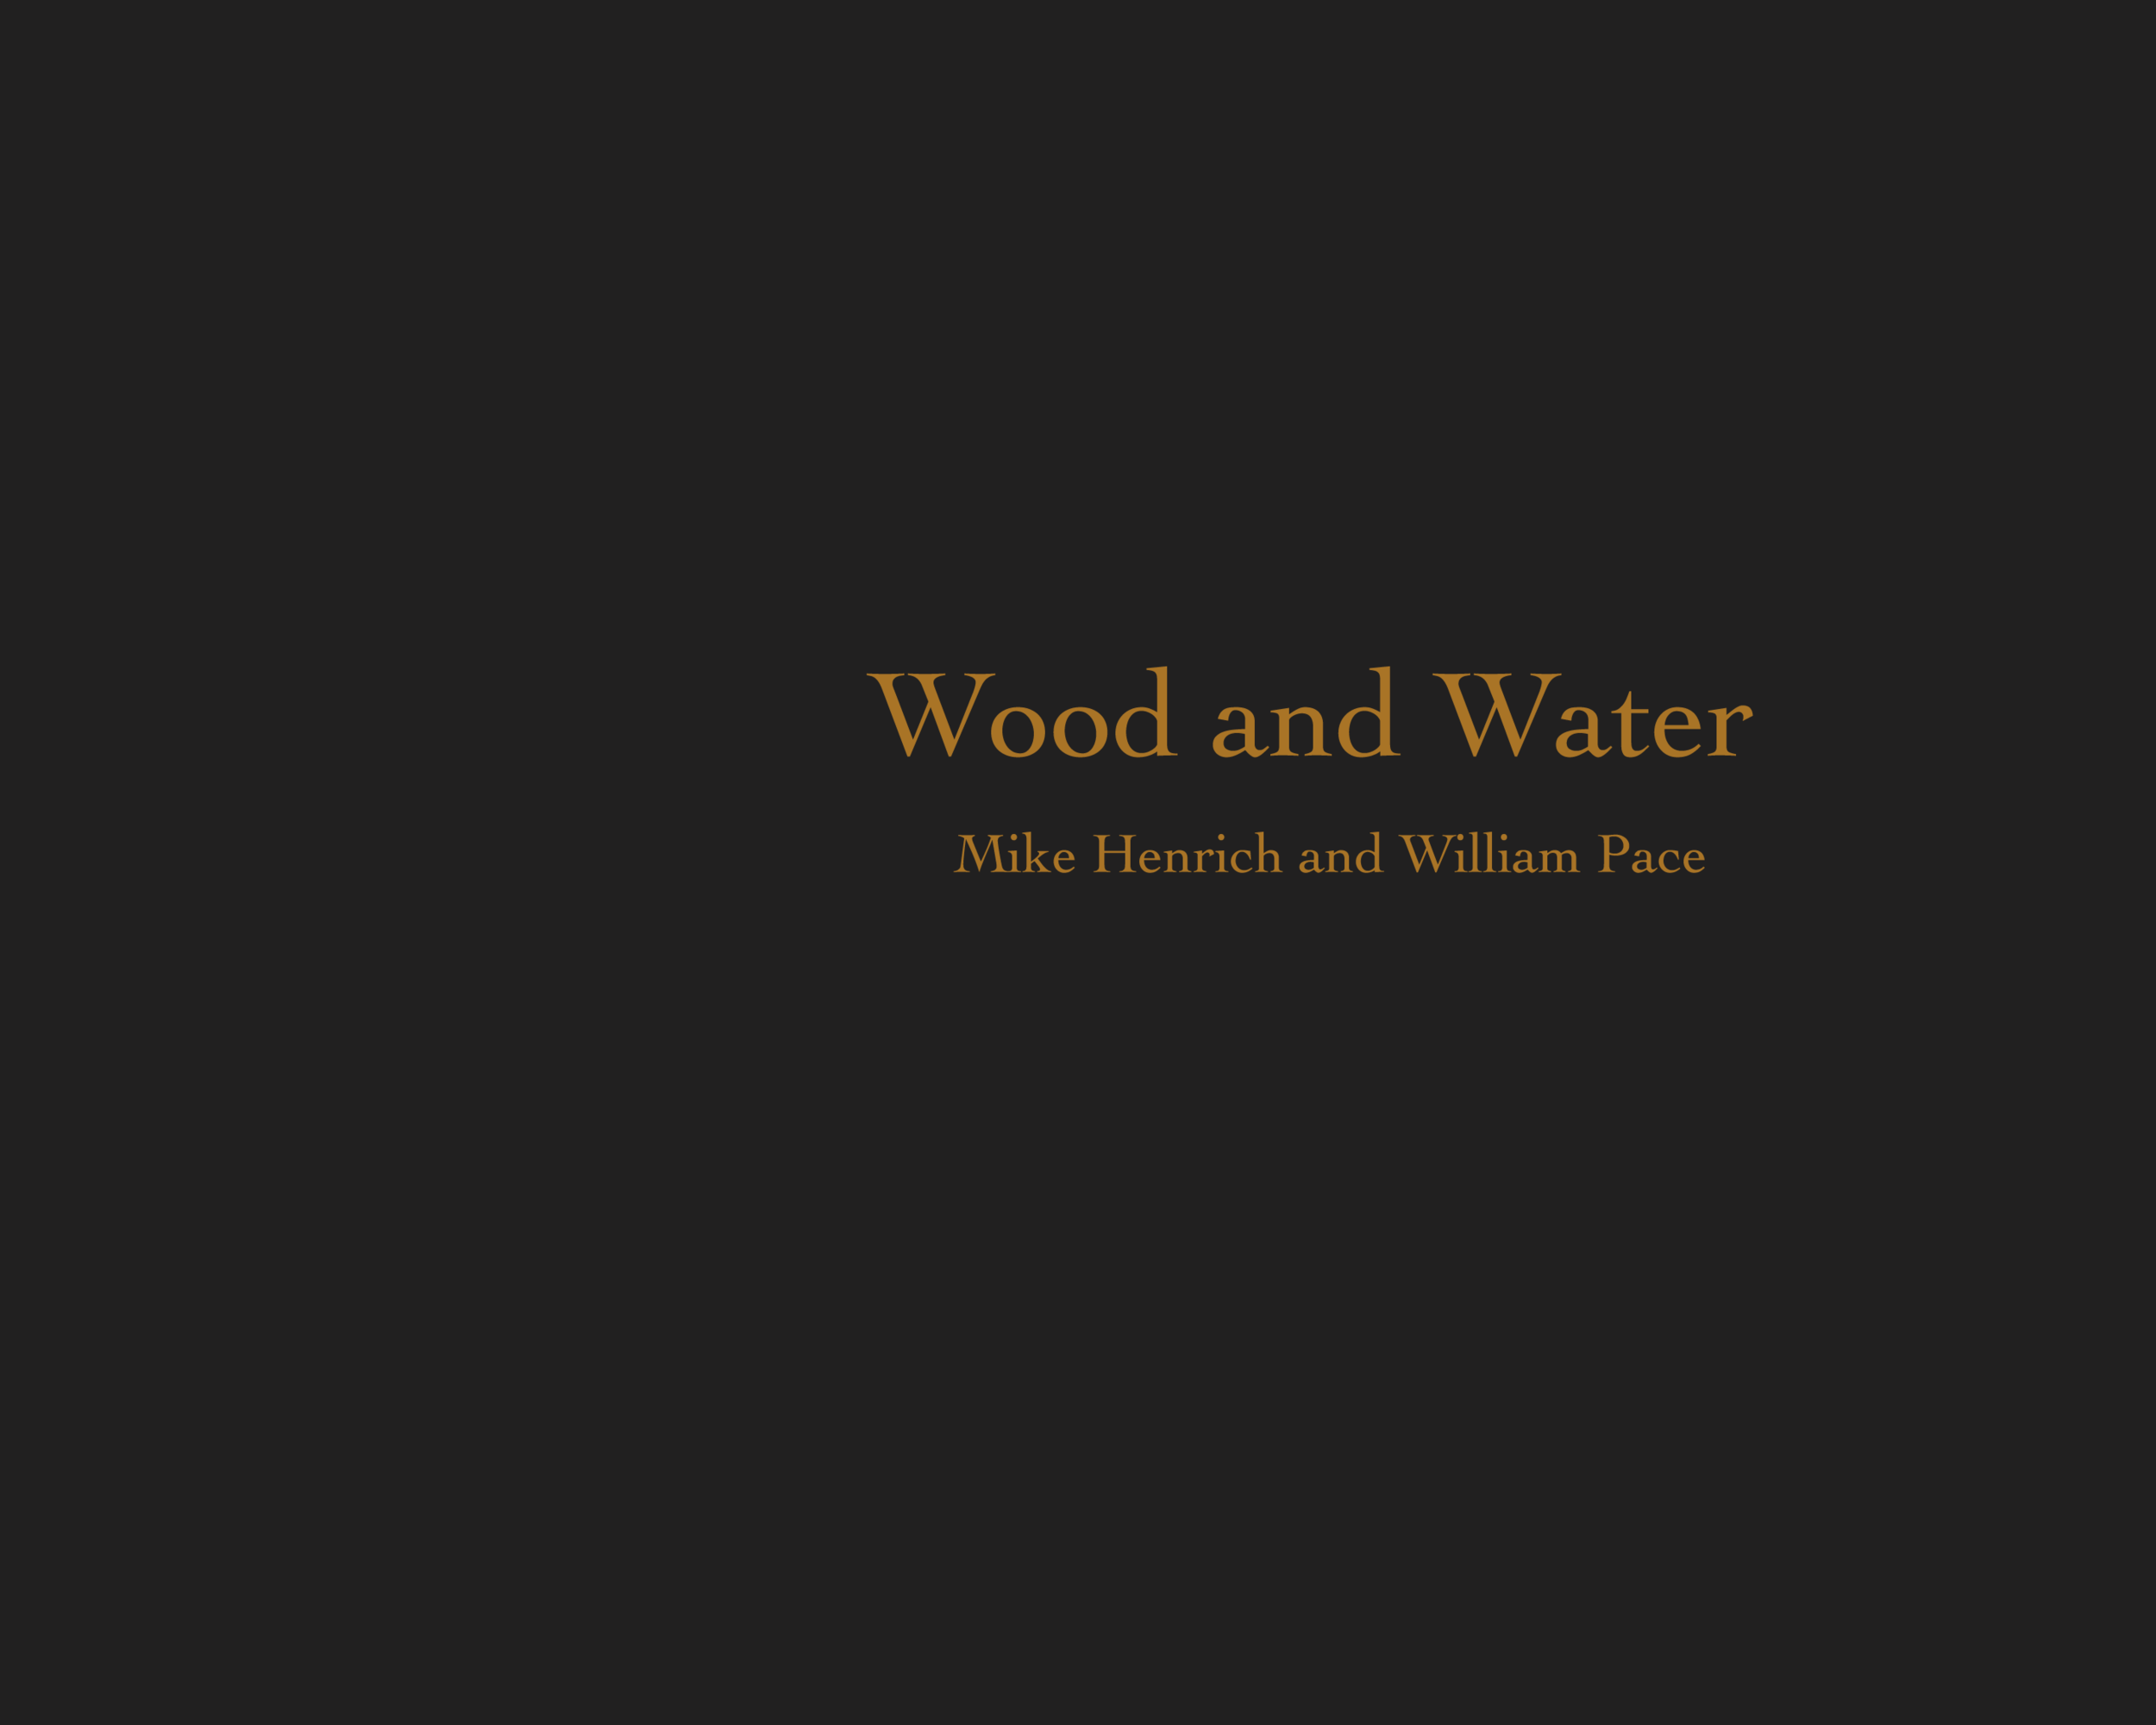 http://www.blurb.com/books/909519-wood-and-water